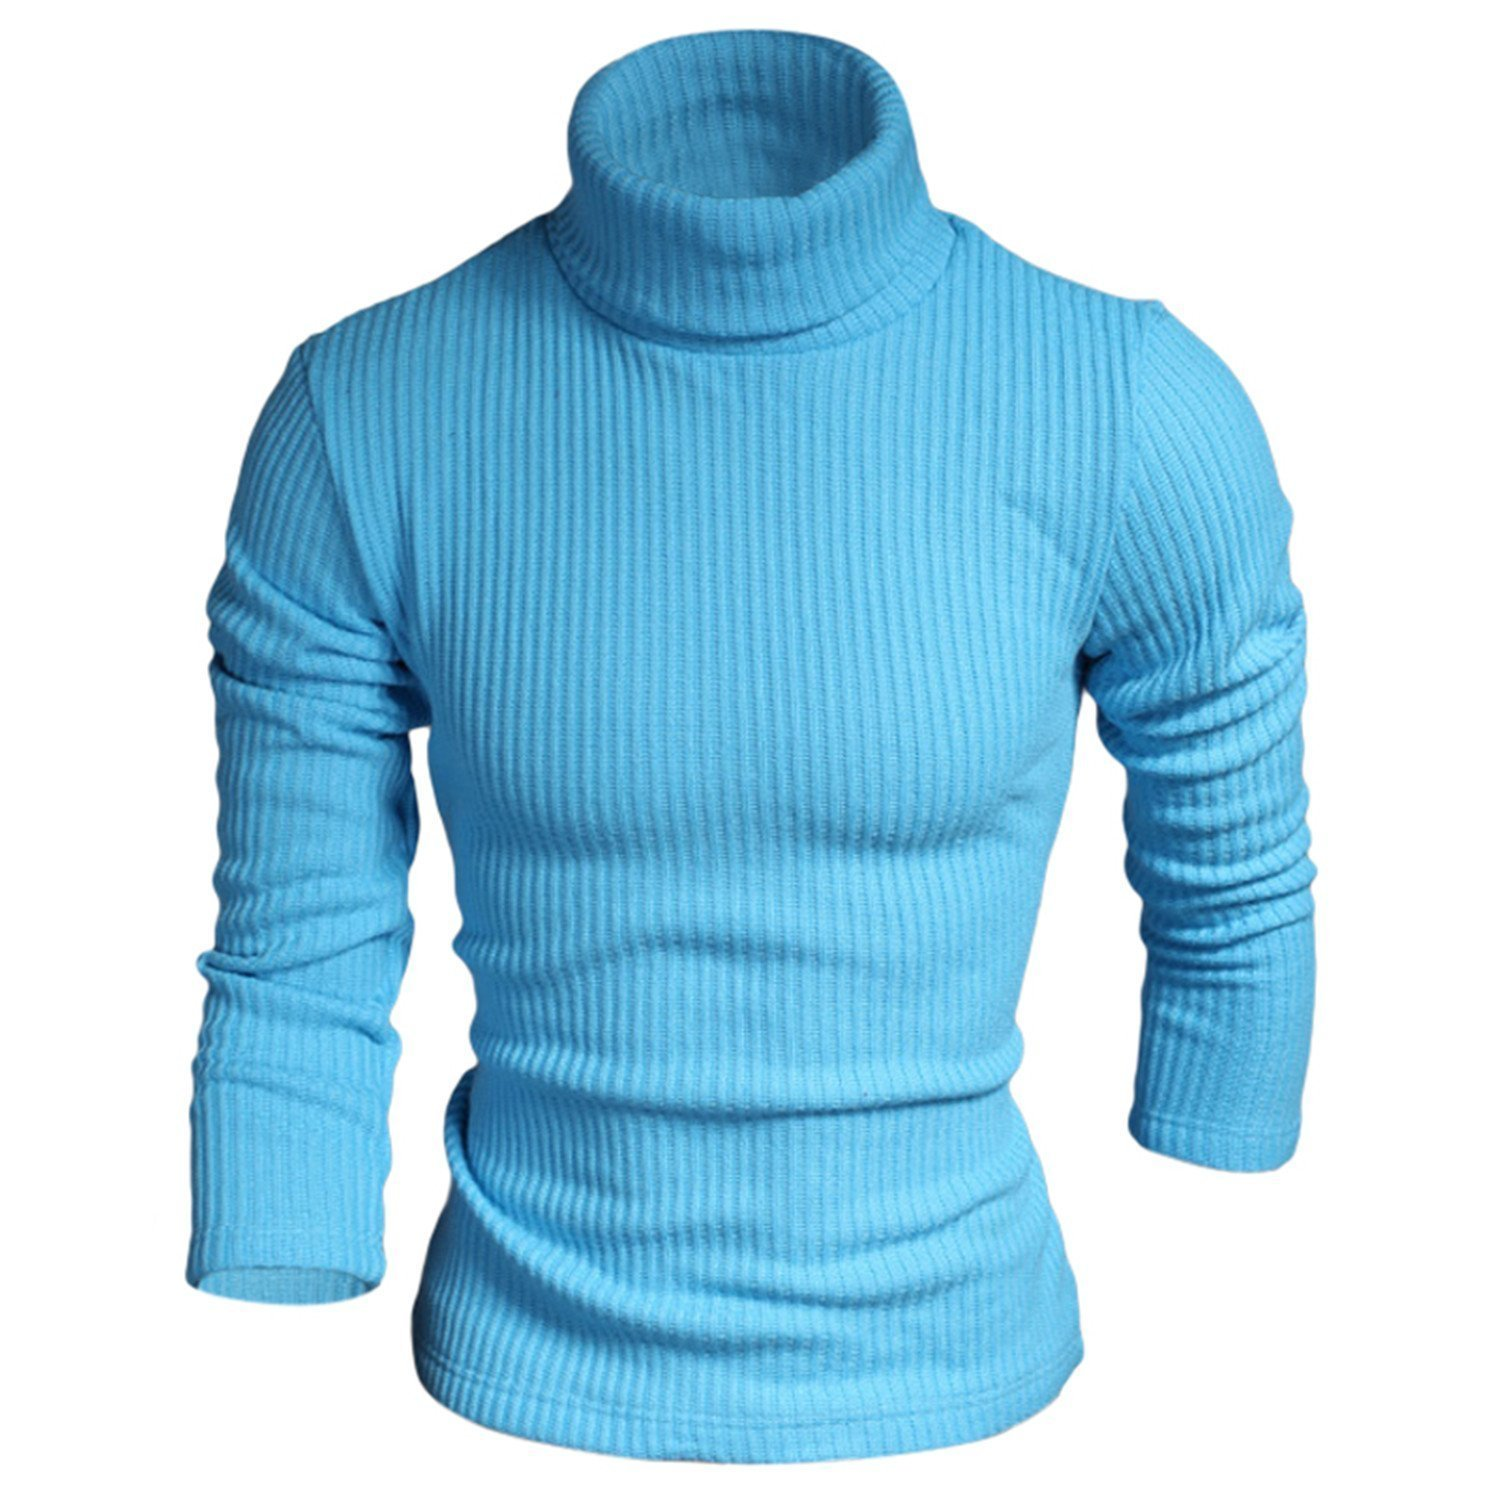 6fc1d2da886 Get Quotations · B dressy Men Knitted Sweaters Turtle Neck Solid Color Slim  Casual Tops Jumpers Pullover Blusa Male